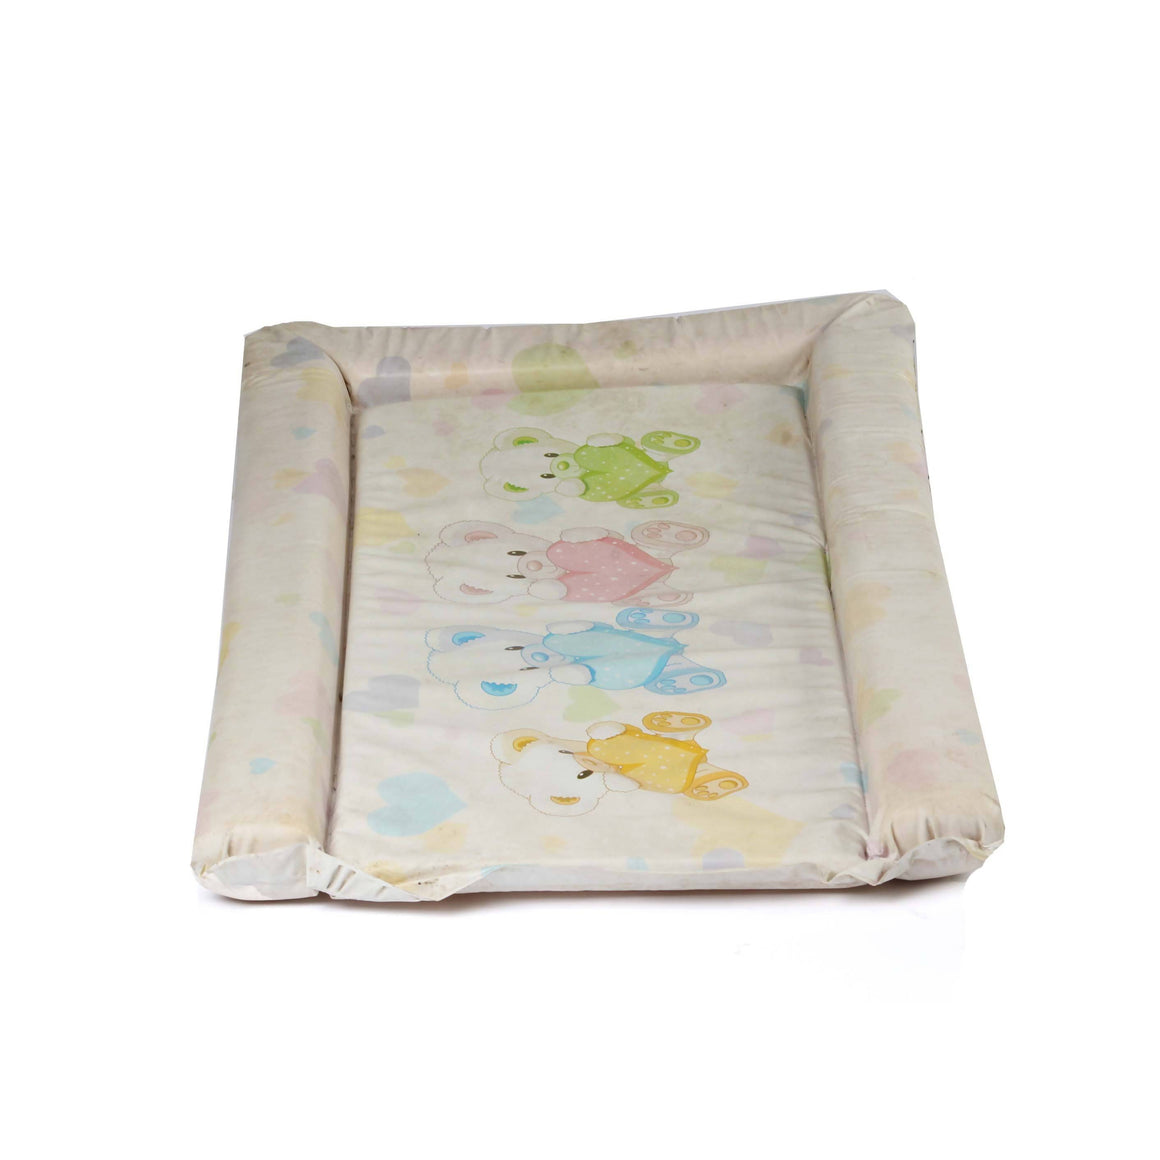 BABY CHANGING MAT - Cuddlecircle